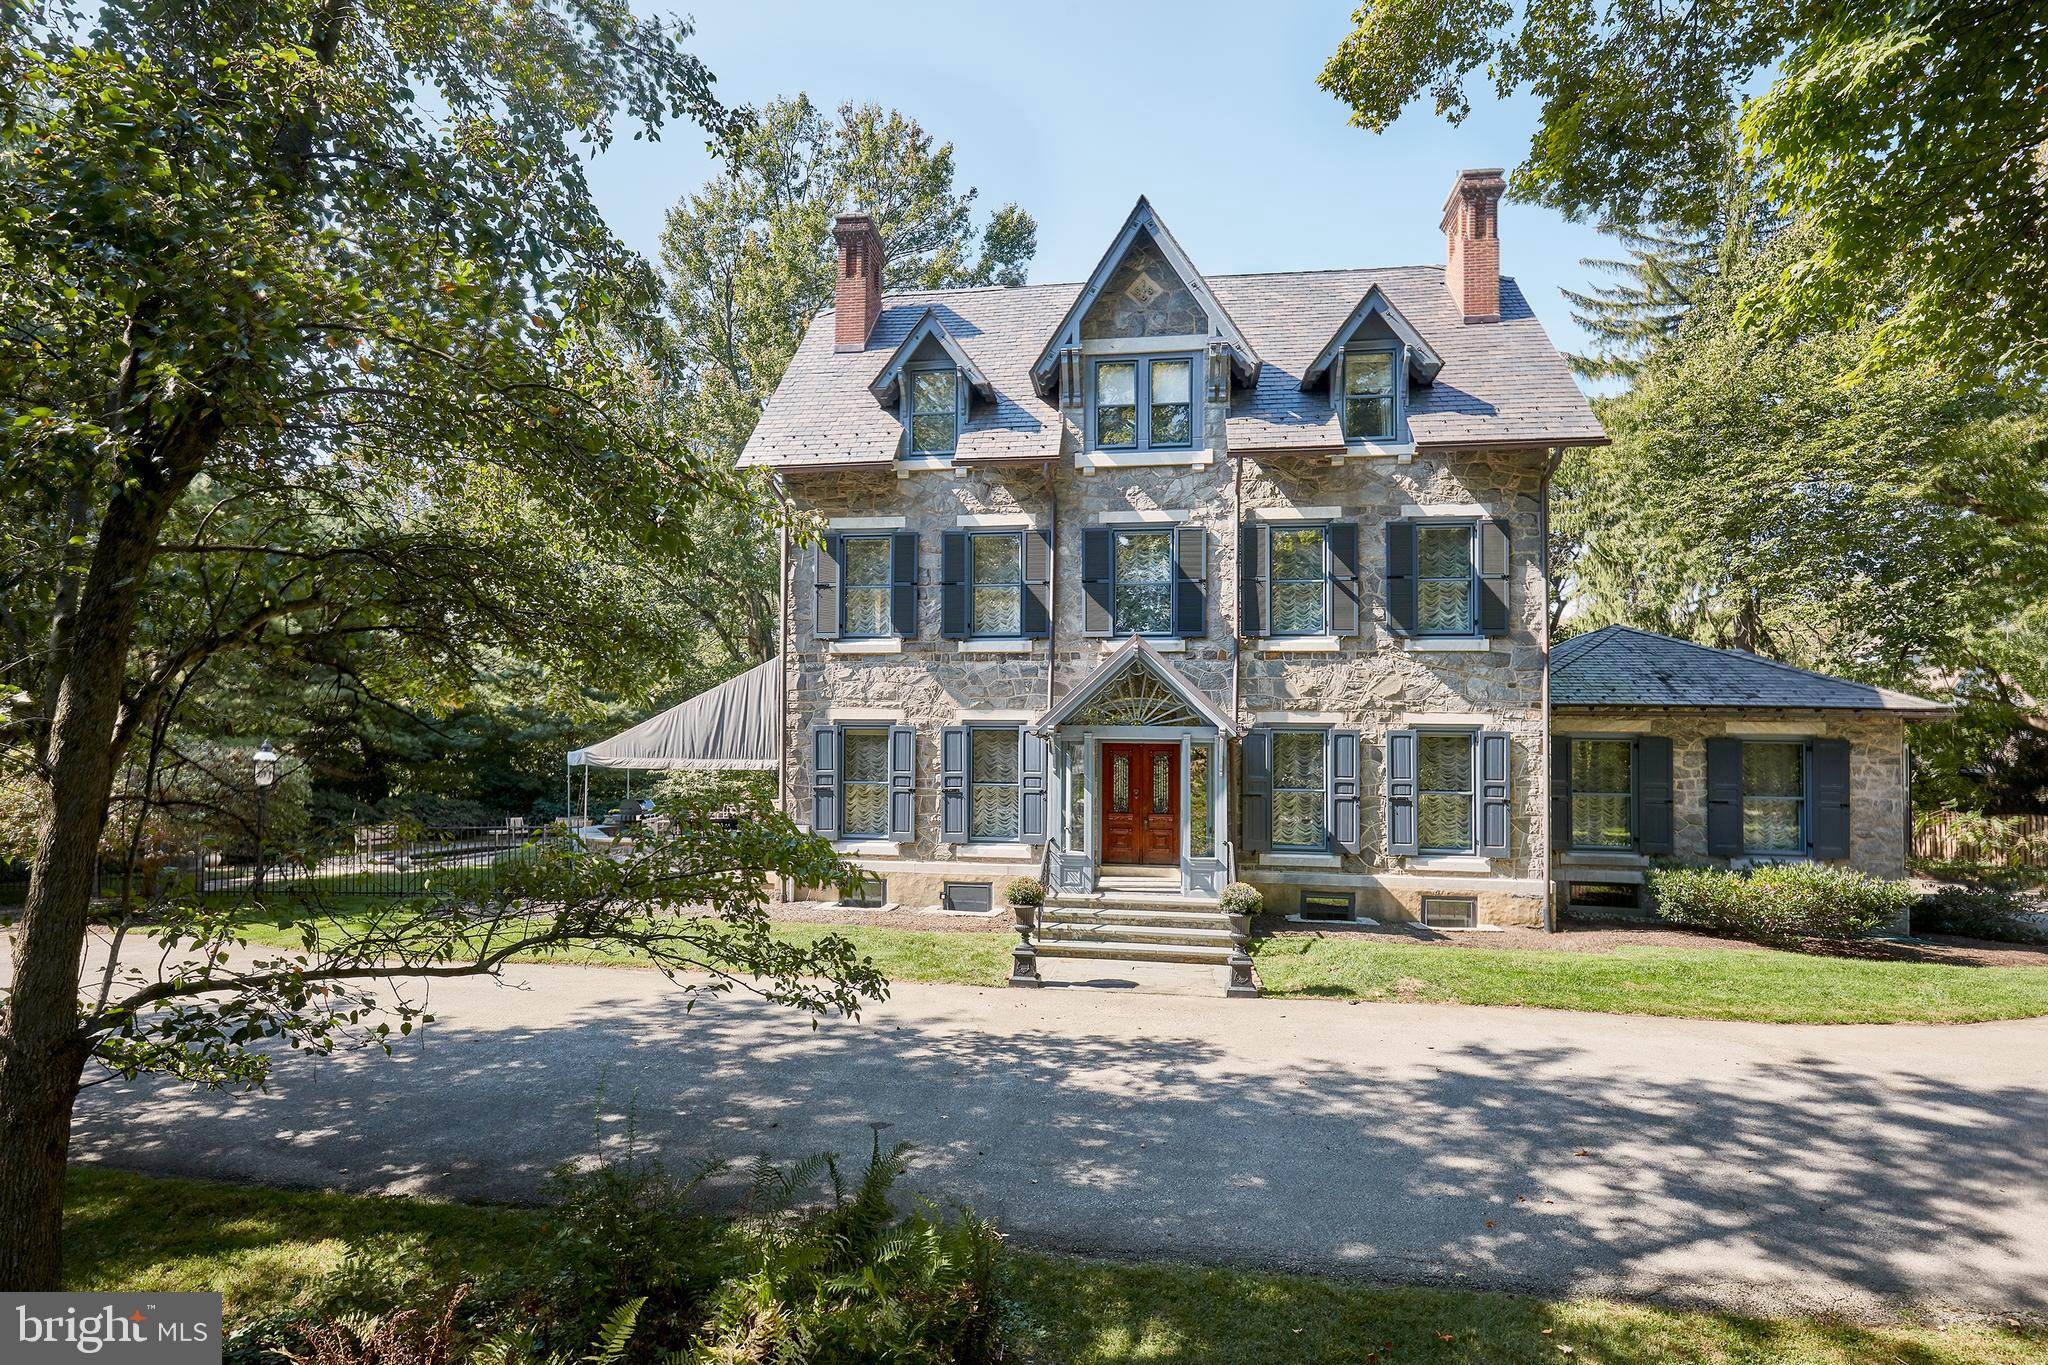 "Exquisitely renovated, sun-filled  stone Manor Home, originally built in 1880, and masterfully brought into the 21st century by renowned artisan, John Milner, with extreme attention paid to every detail and amenity. Enjoy the complete privacy while backing up to conserved Township space in a ""walk to everything including the Radnor Trail"" location. This lovely residence offers stunning original architectural features,  perfectly restored materials, oak floors, massive moldings, millwork, beams and fireplaces of yesteryear,  perfectly blended with newly installed antique light fixtures, multiple office spaces, new Gourmet Kitchen with adjacent Family Room, exquisitely executed vintage-style Baths, new wiring, plumbing, HVAC systems and insulation, 12 foot ceilings with sun-filled floor to ceiling windows and French doors, fabulous Master Suite, and 5 other spacious bedrooms, all set on a flat 3.8 acre lot with room for a pool and tennis court. Dry and fully restored, unfinished basement with exposed stone walls and high ceilings. Easy to finish with a game/ media room, wine cellar and more.  Separate 3-car garage/ carriage house with easy to finish space above! Enter through the stone pillars along the gracious circular driveway, and take in the gorgeous views of the glorious grounds, terraces, outdoor porches and more. Just minutes from the train, renowned private and Radnor schools, shopping, restaurants, 15 minutes from Center City Philadelphia, Philadelphia International Airport and 90 minutes from NYC. Turn the key and move right into this one of a kind treasure. LOW TAXES!"